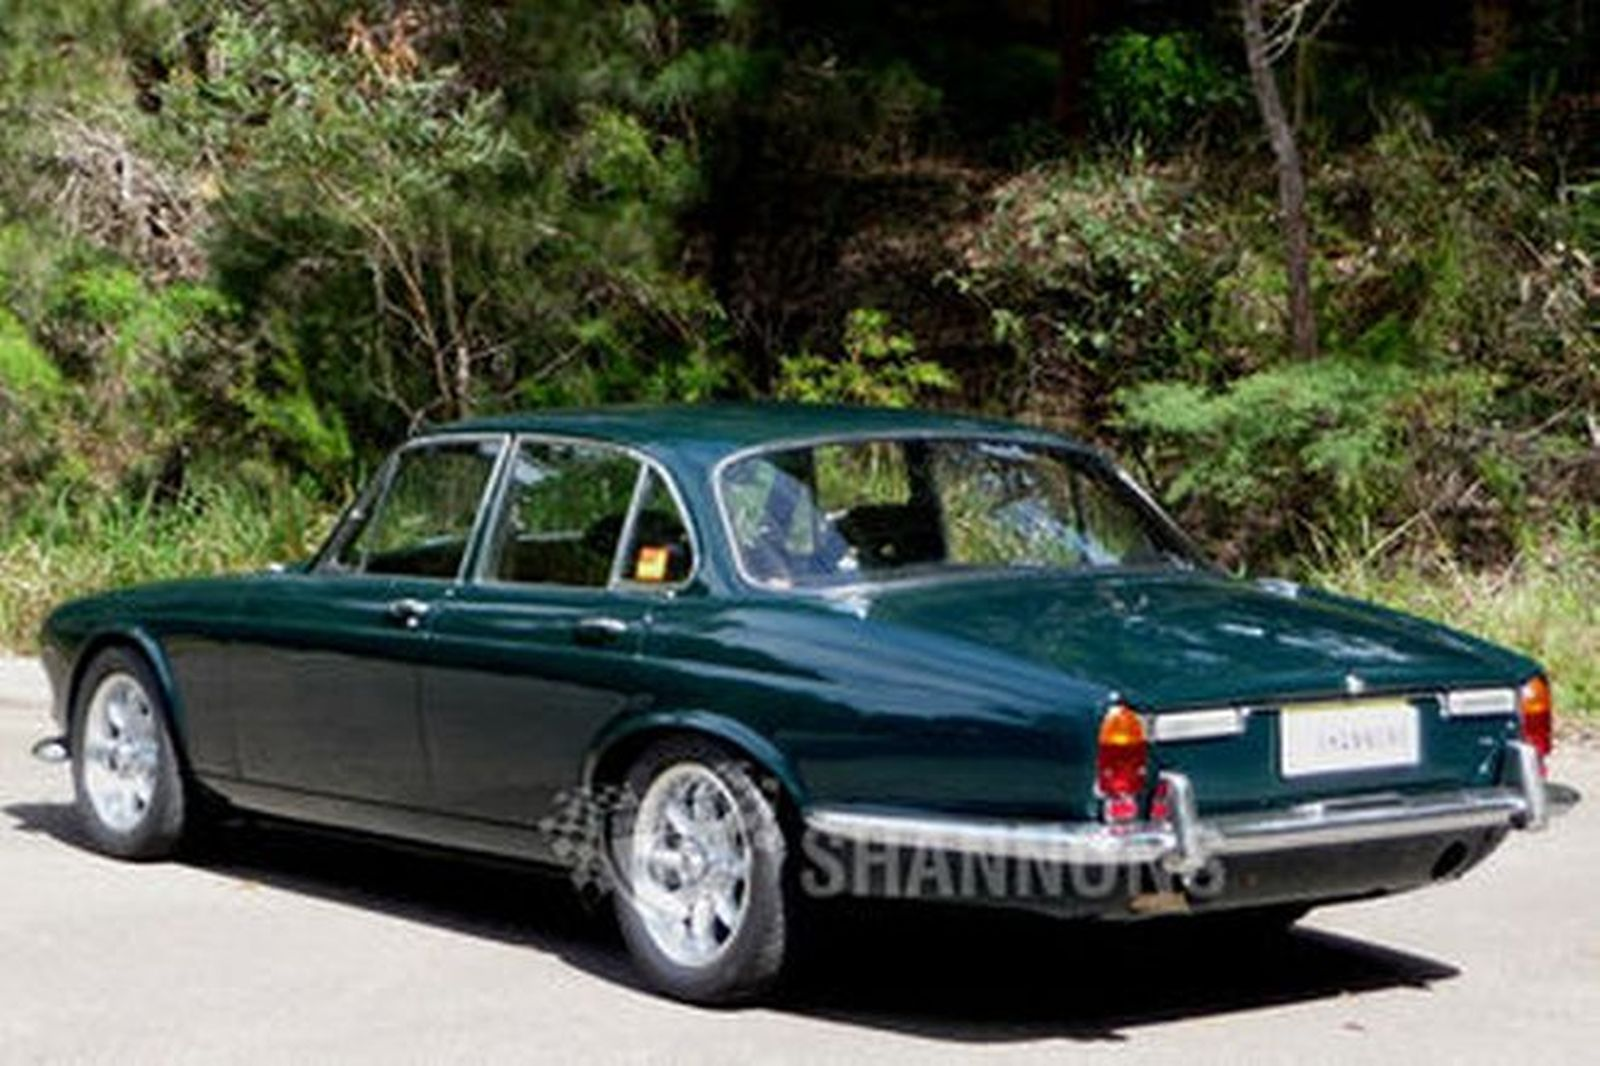 Jaguar xj6 series 1 for sale australia